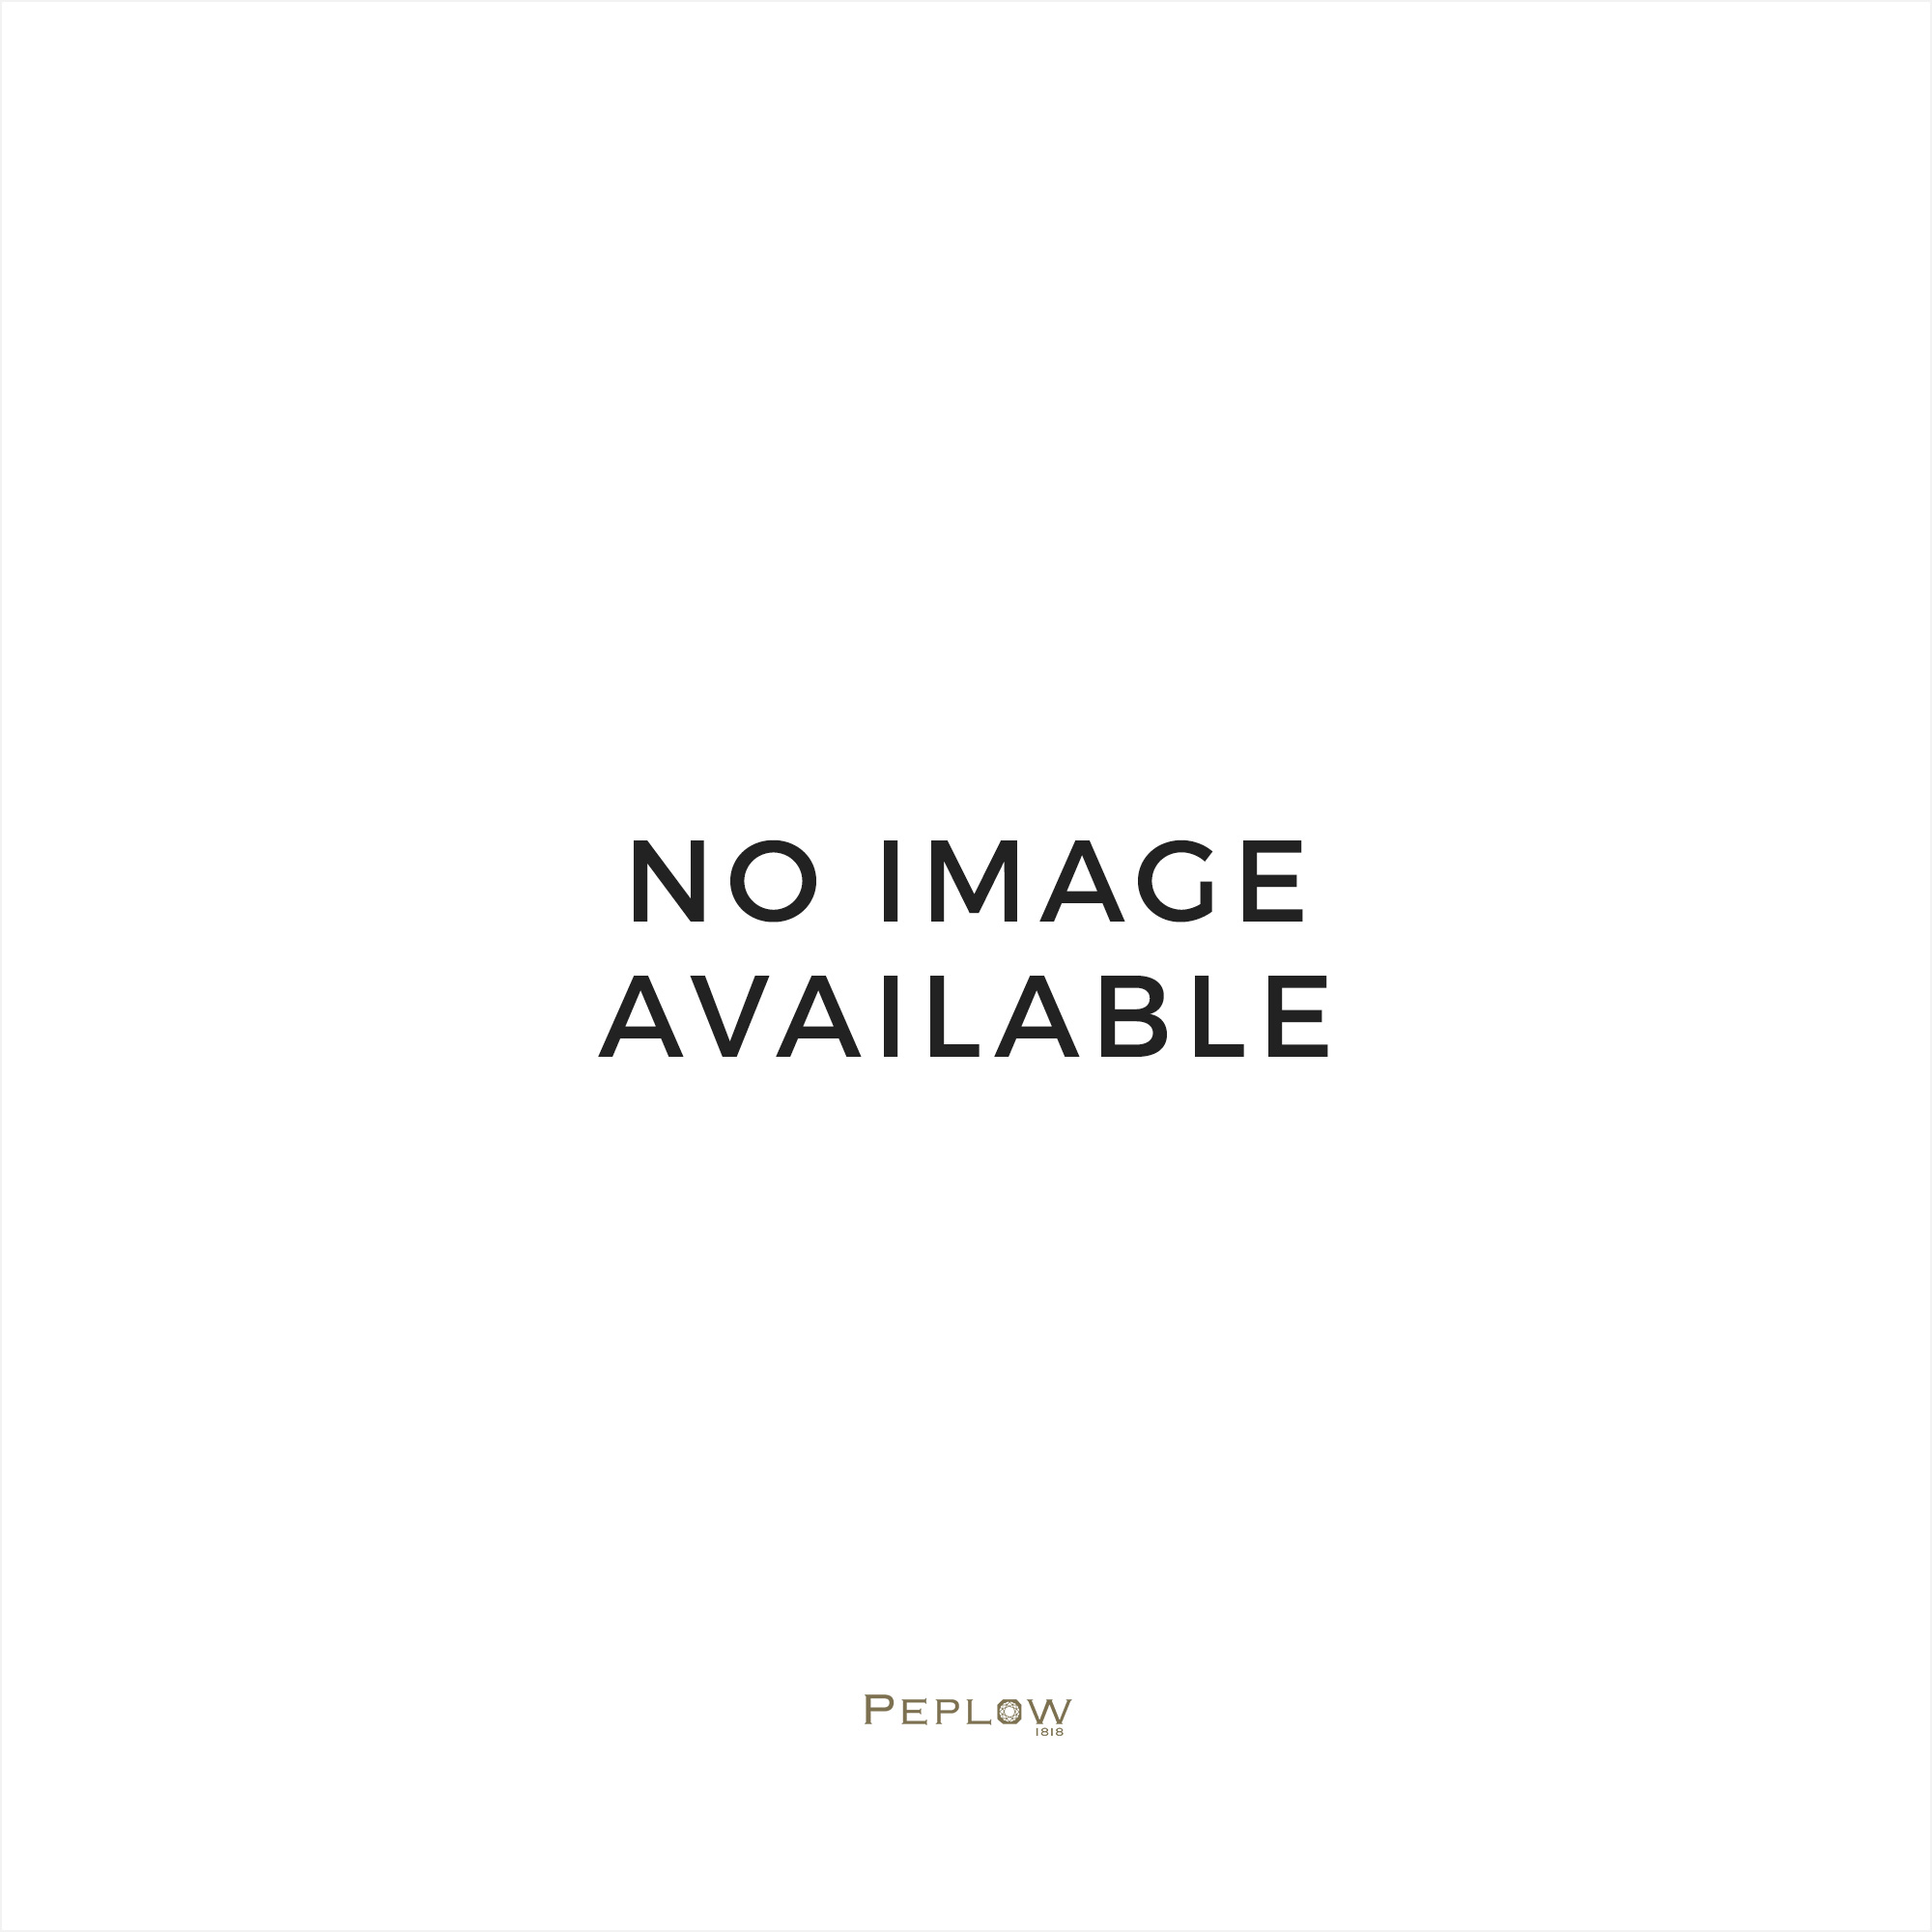 PREOWNED Ladies 18 carat yellow gold Rolex with diamond dial.